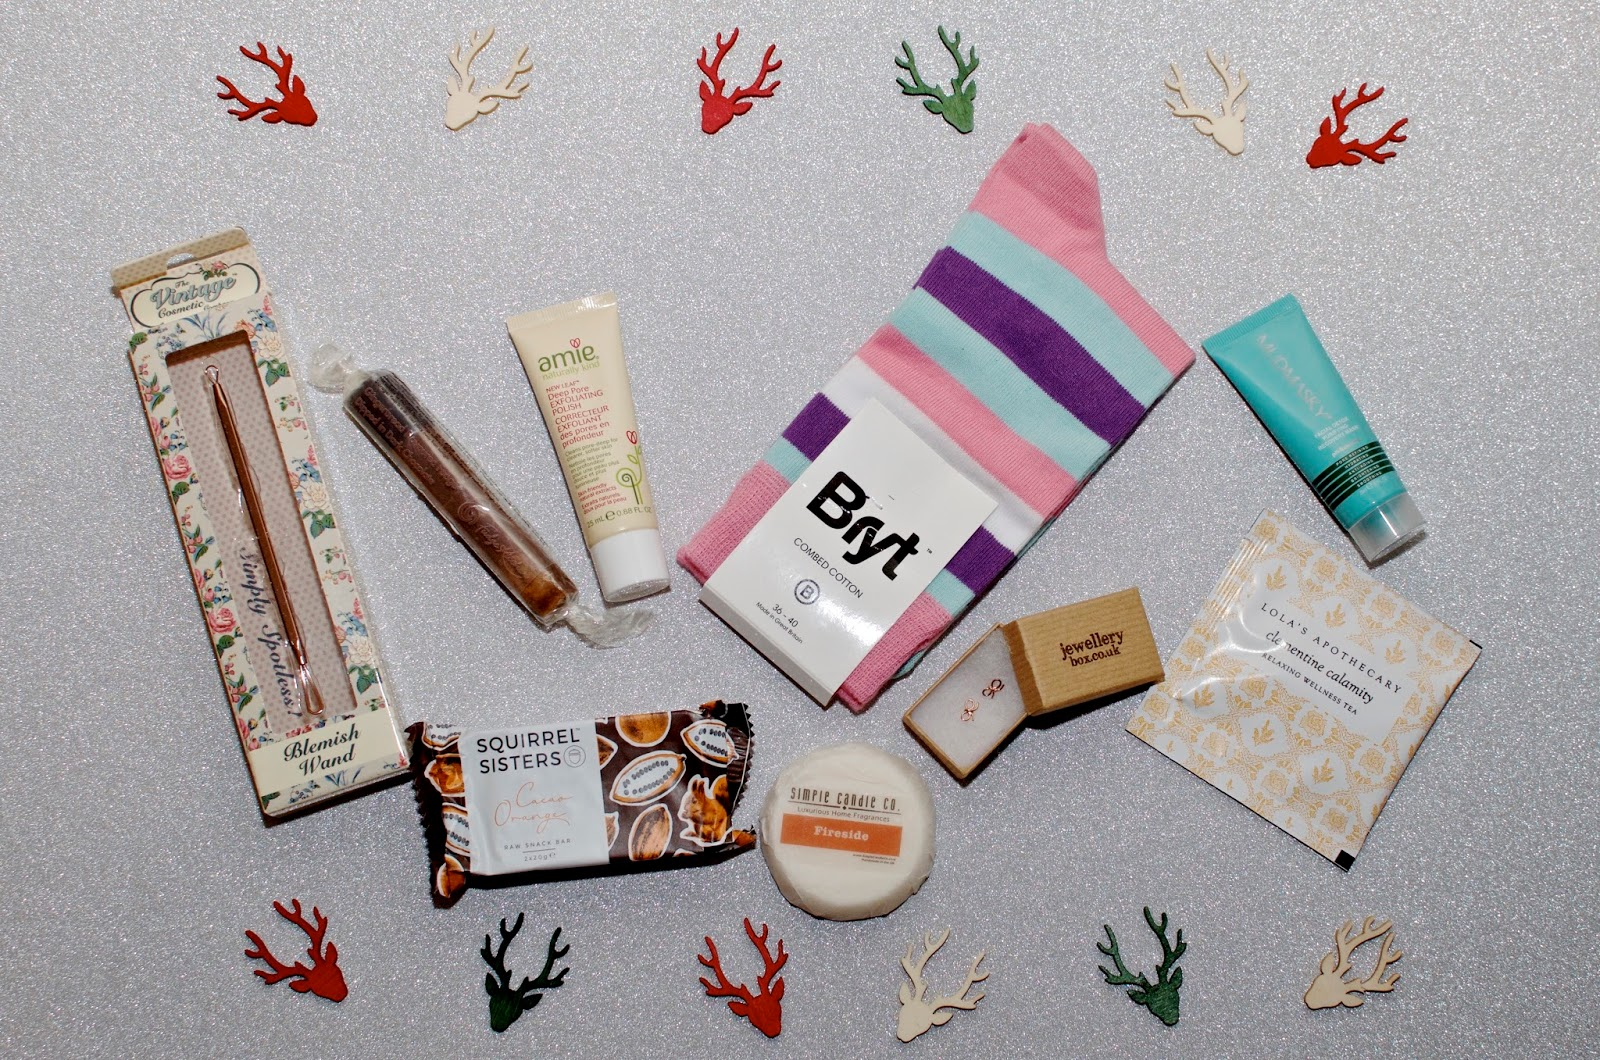 striped socks, reindeer confetti, chocolate, jewelry, and beauty products